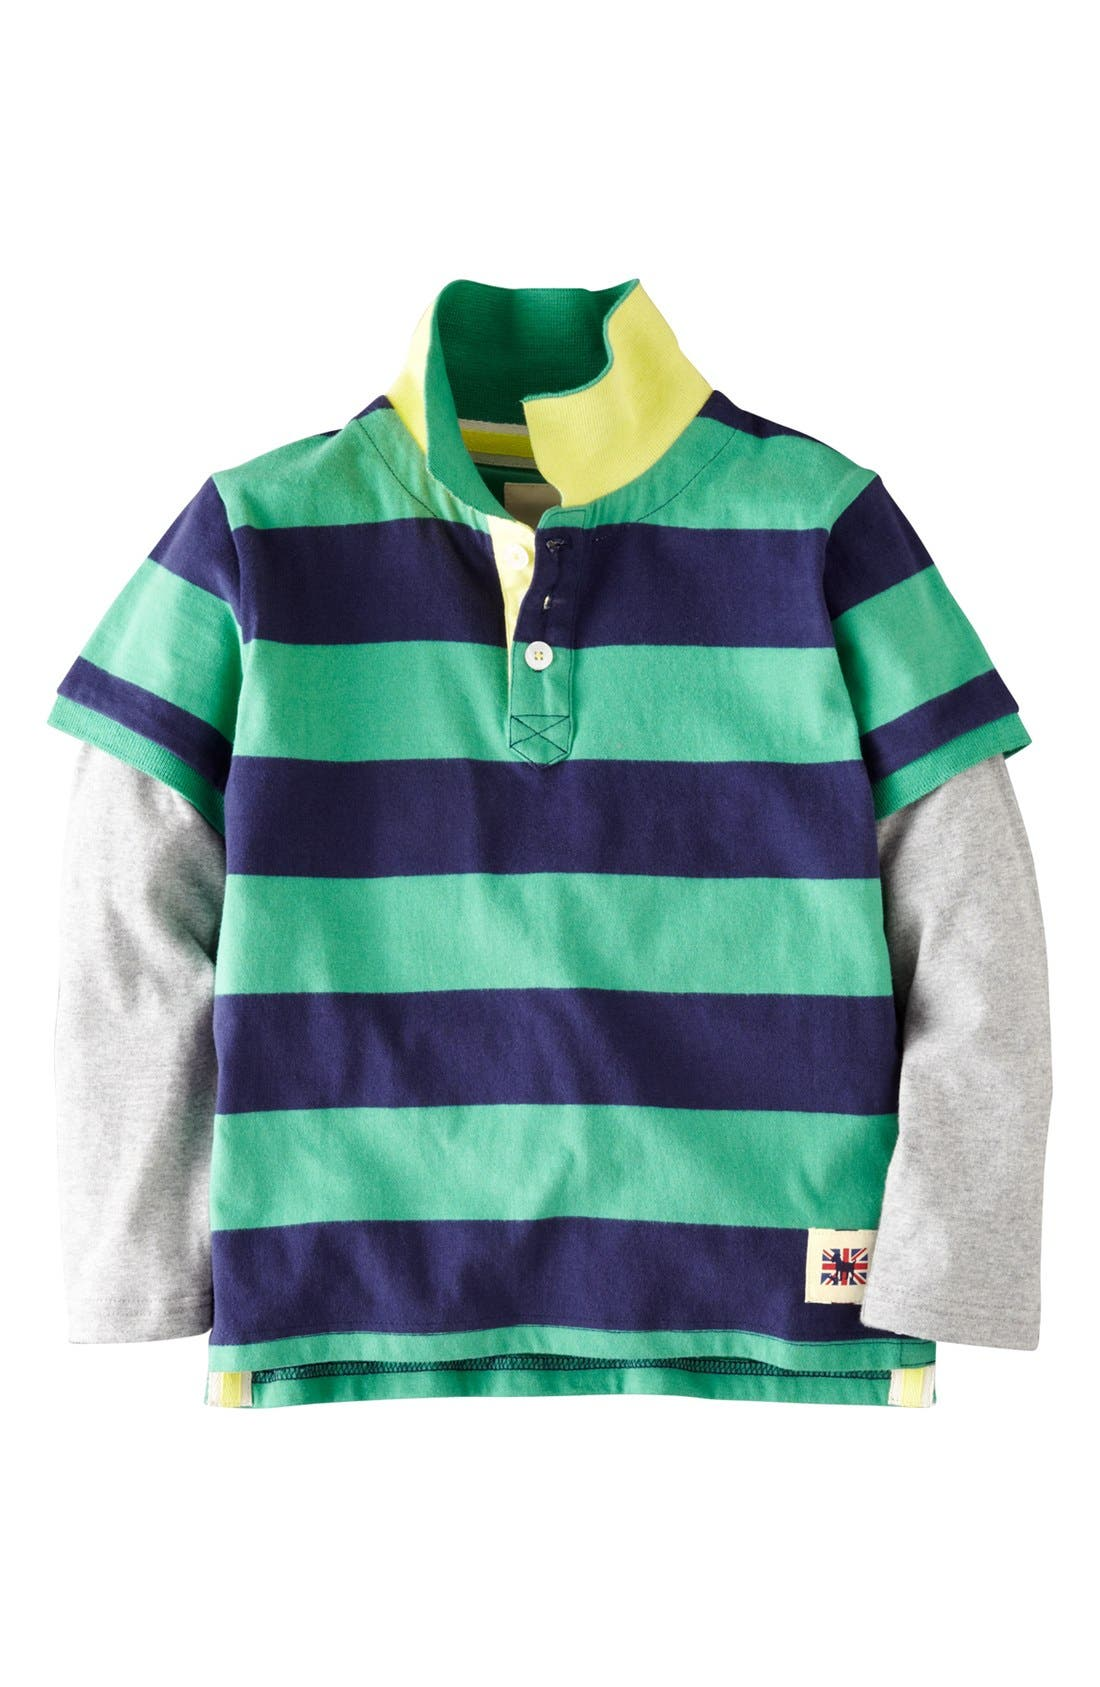 Alternate Image 1 Selected - Mini Boden Layered Sleeve Polo (Toddler Boys, Little Boys & Big Boys)